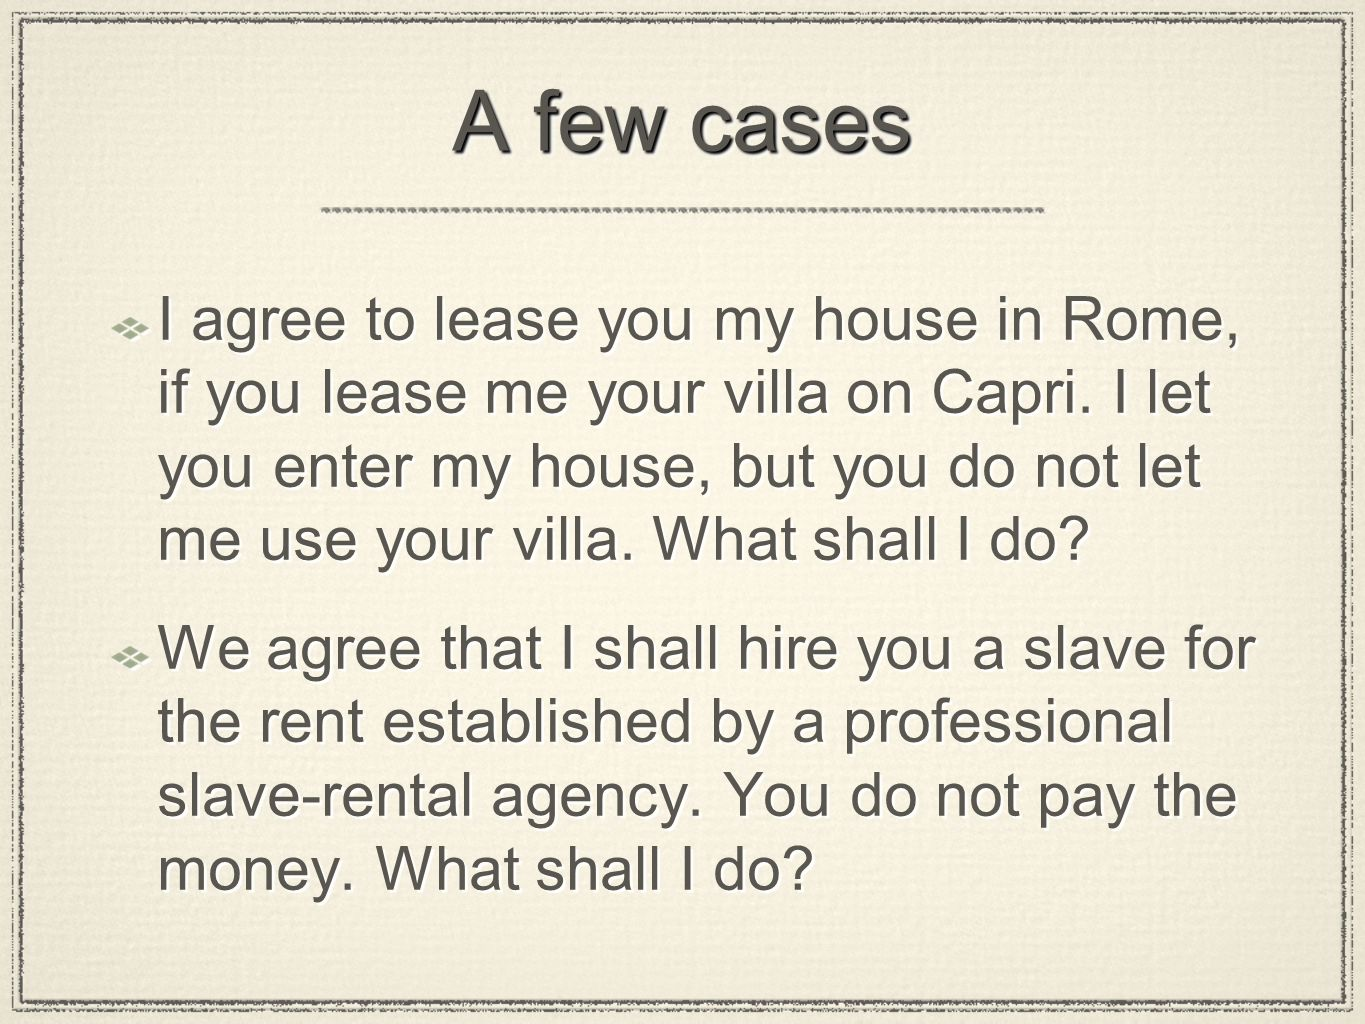 A few cases I agree to lease you my house in Rome, if you lease me your villa on Capri. I let you enter my house, but you do not let me use your villa